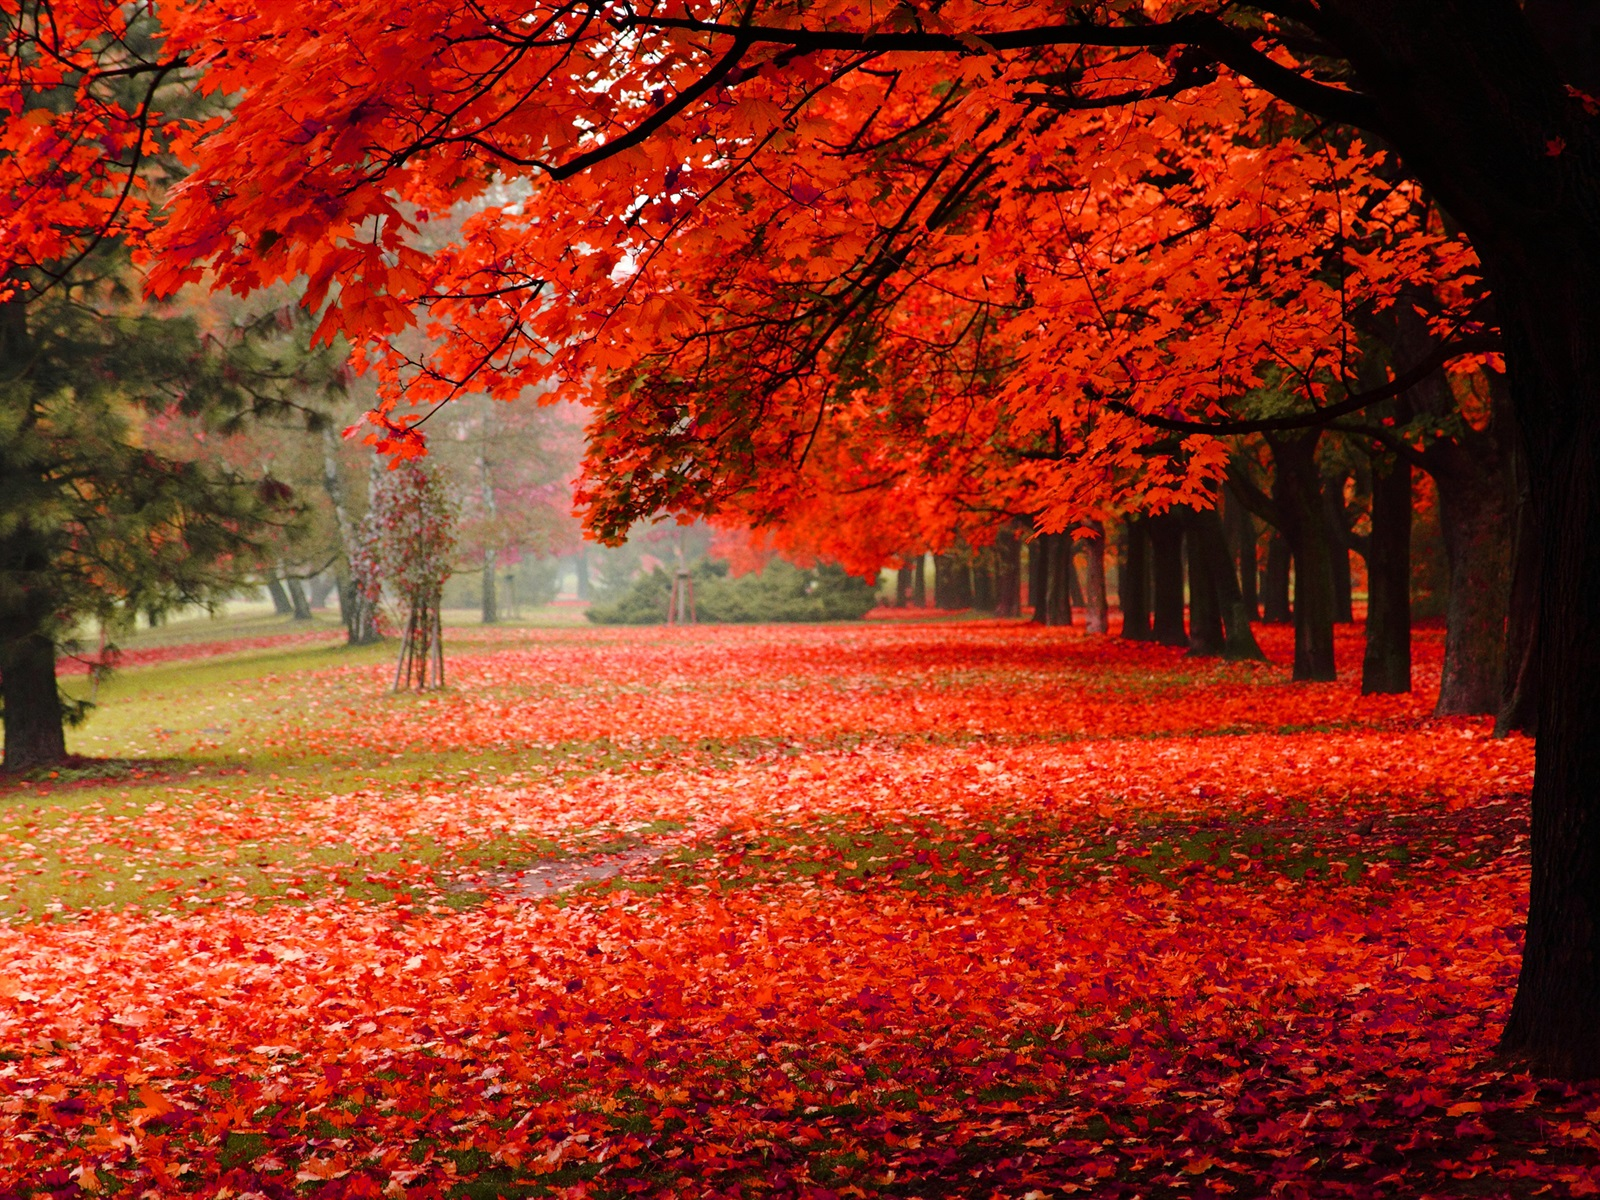 Beautiful autumn, red leaves 1600x1200 wallpaper